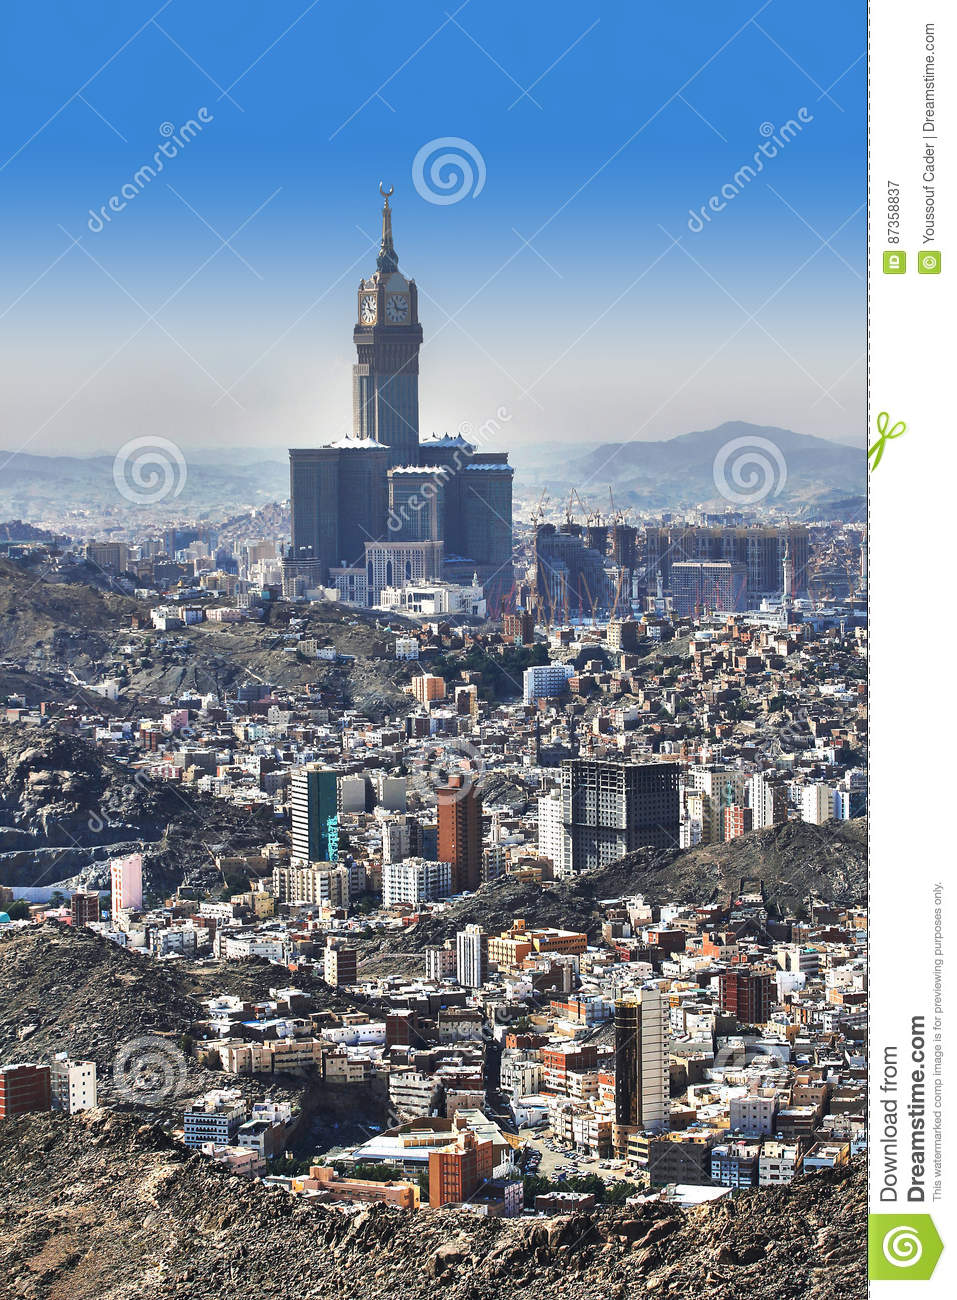 Aerial View Of Mecca Holy City In Saudia Arabia Stock Image Image Of Tower Desert 87358837